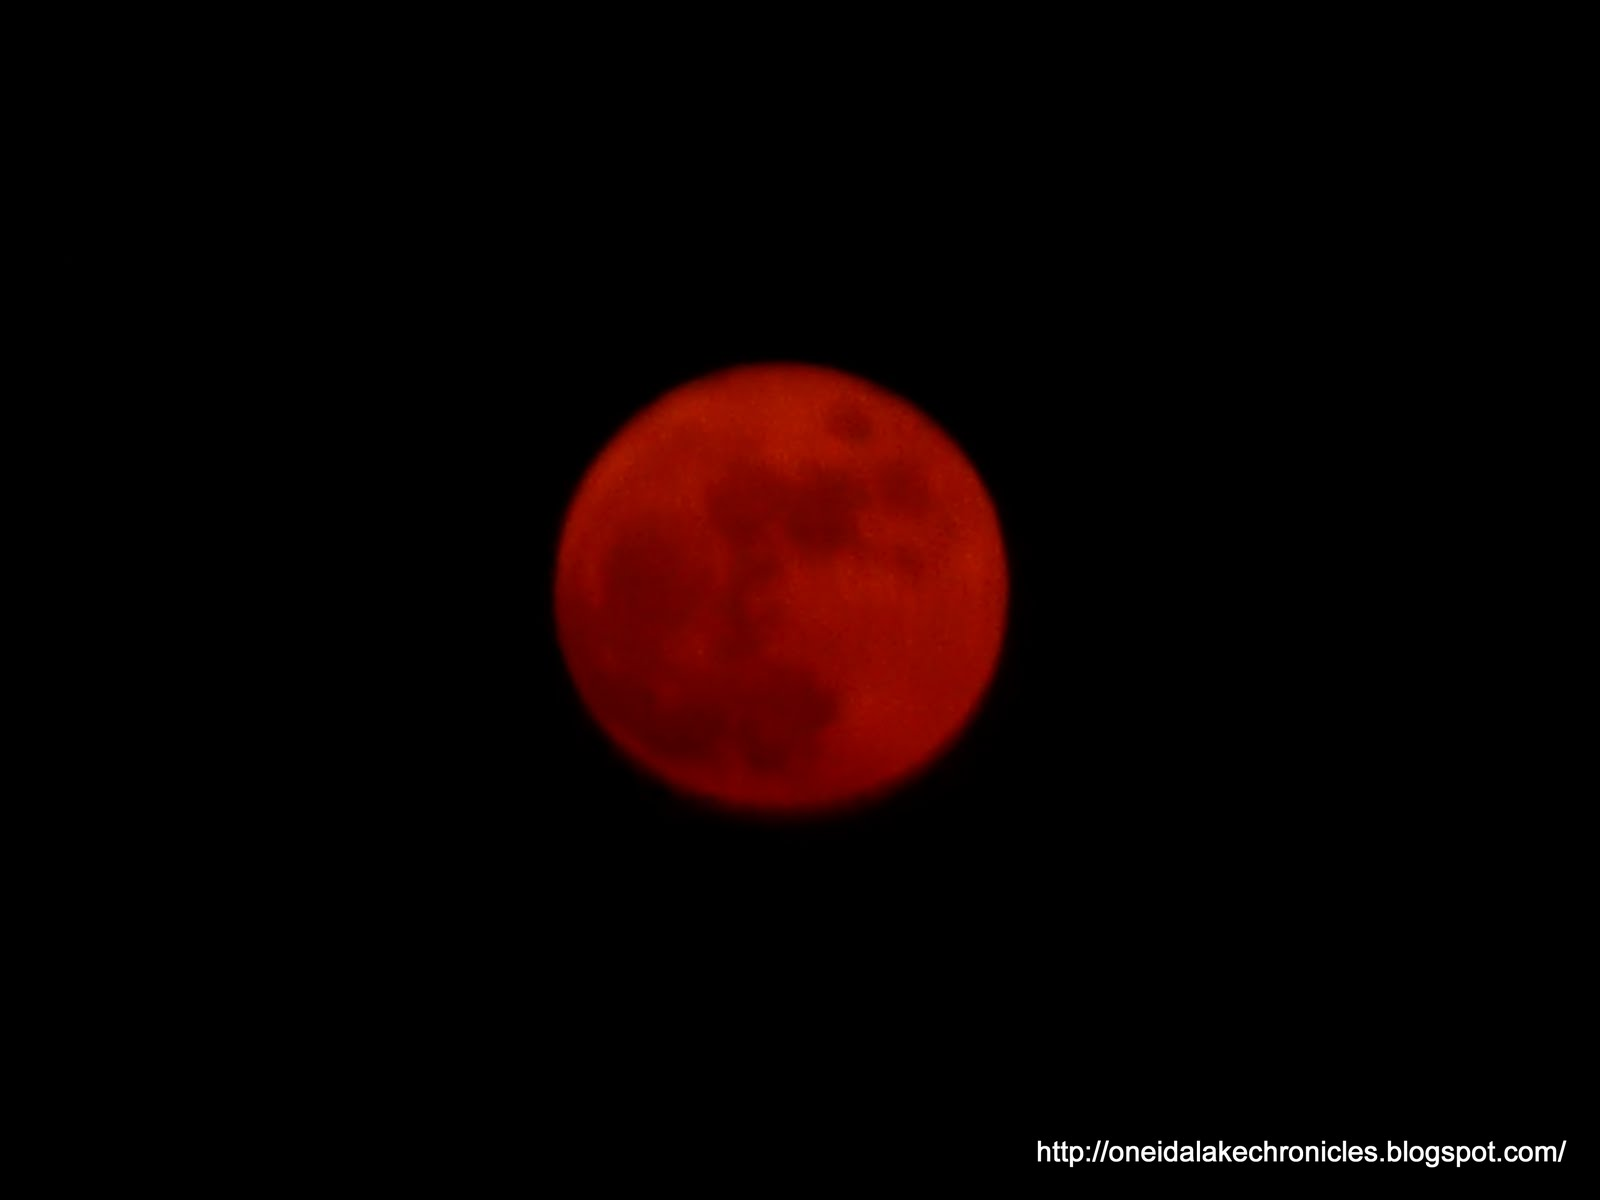 Oneida Lake Chronicles: Blood Red Full Moon over Oneida ...